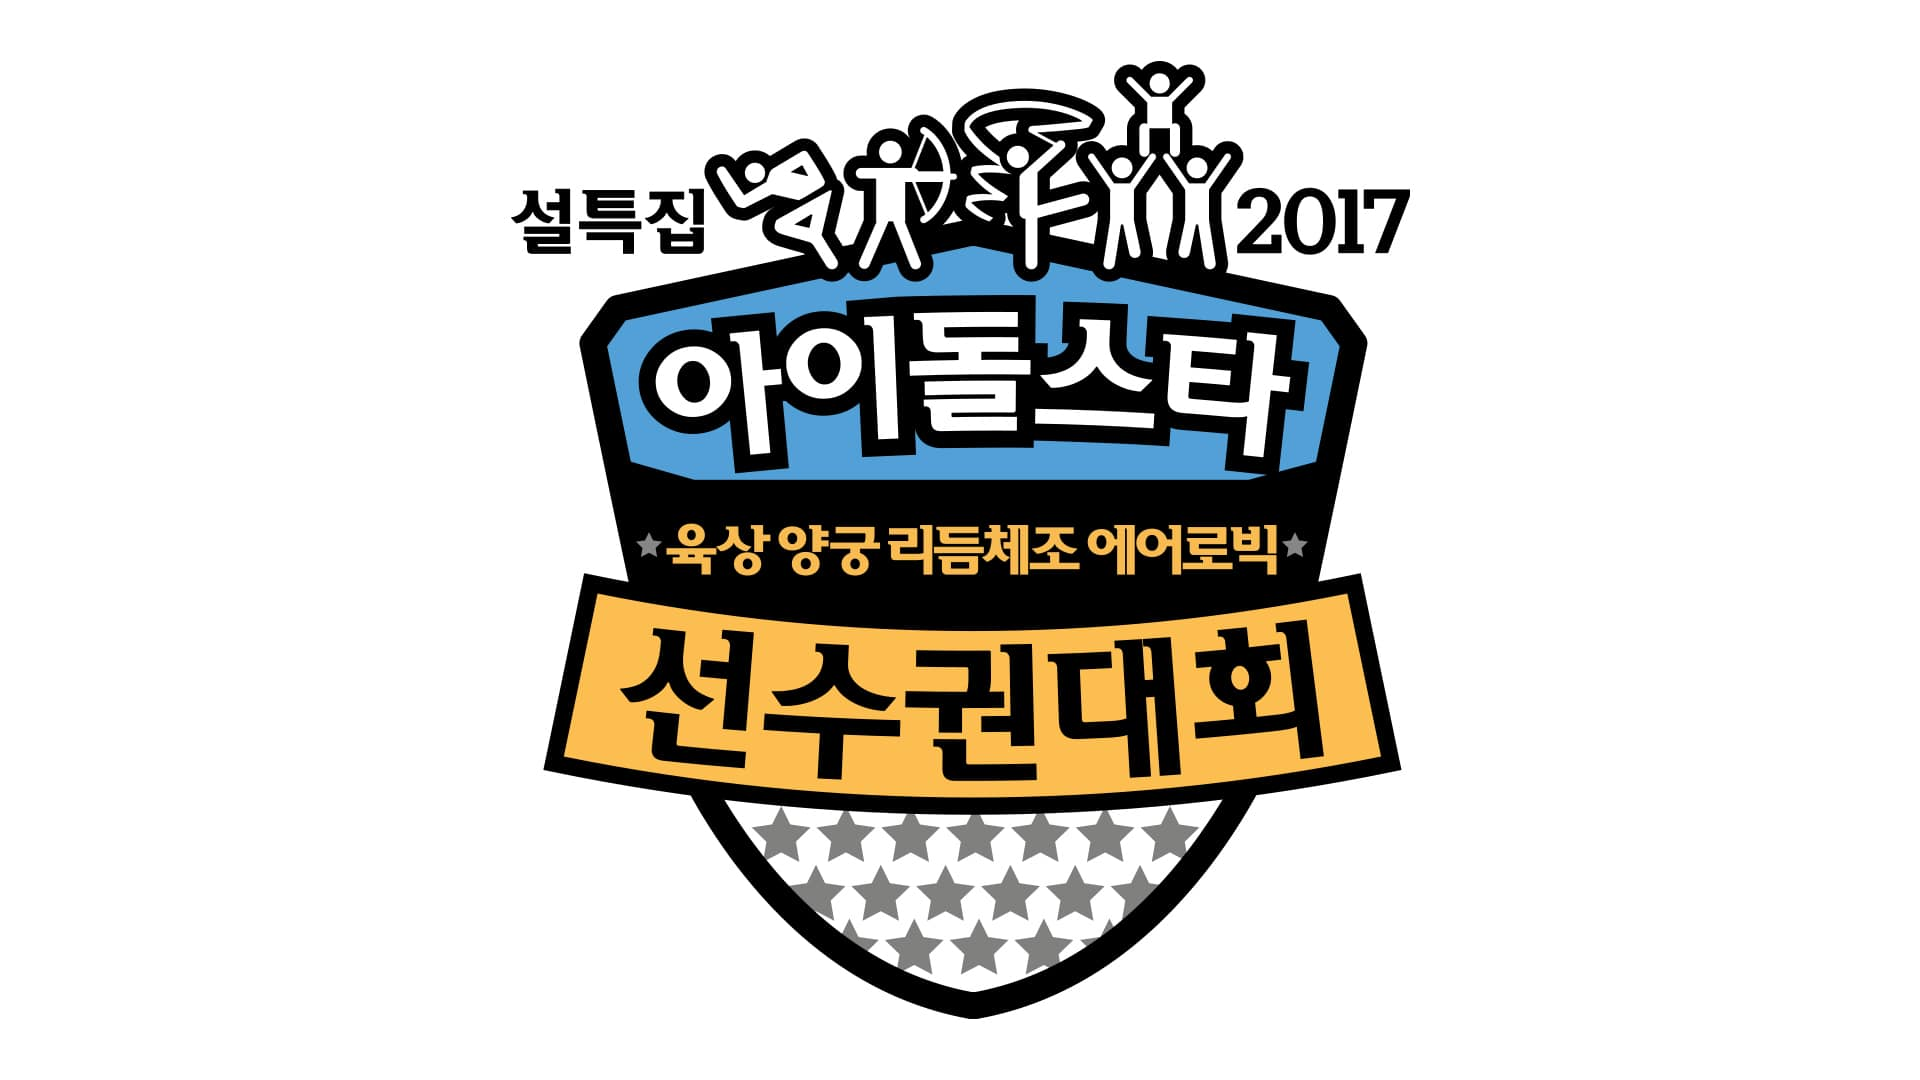 Filming For 2017 Idol Star Athletics Championships Temporarily Suspended Due To MBC Strike